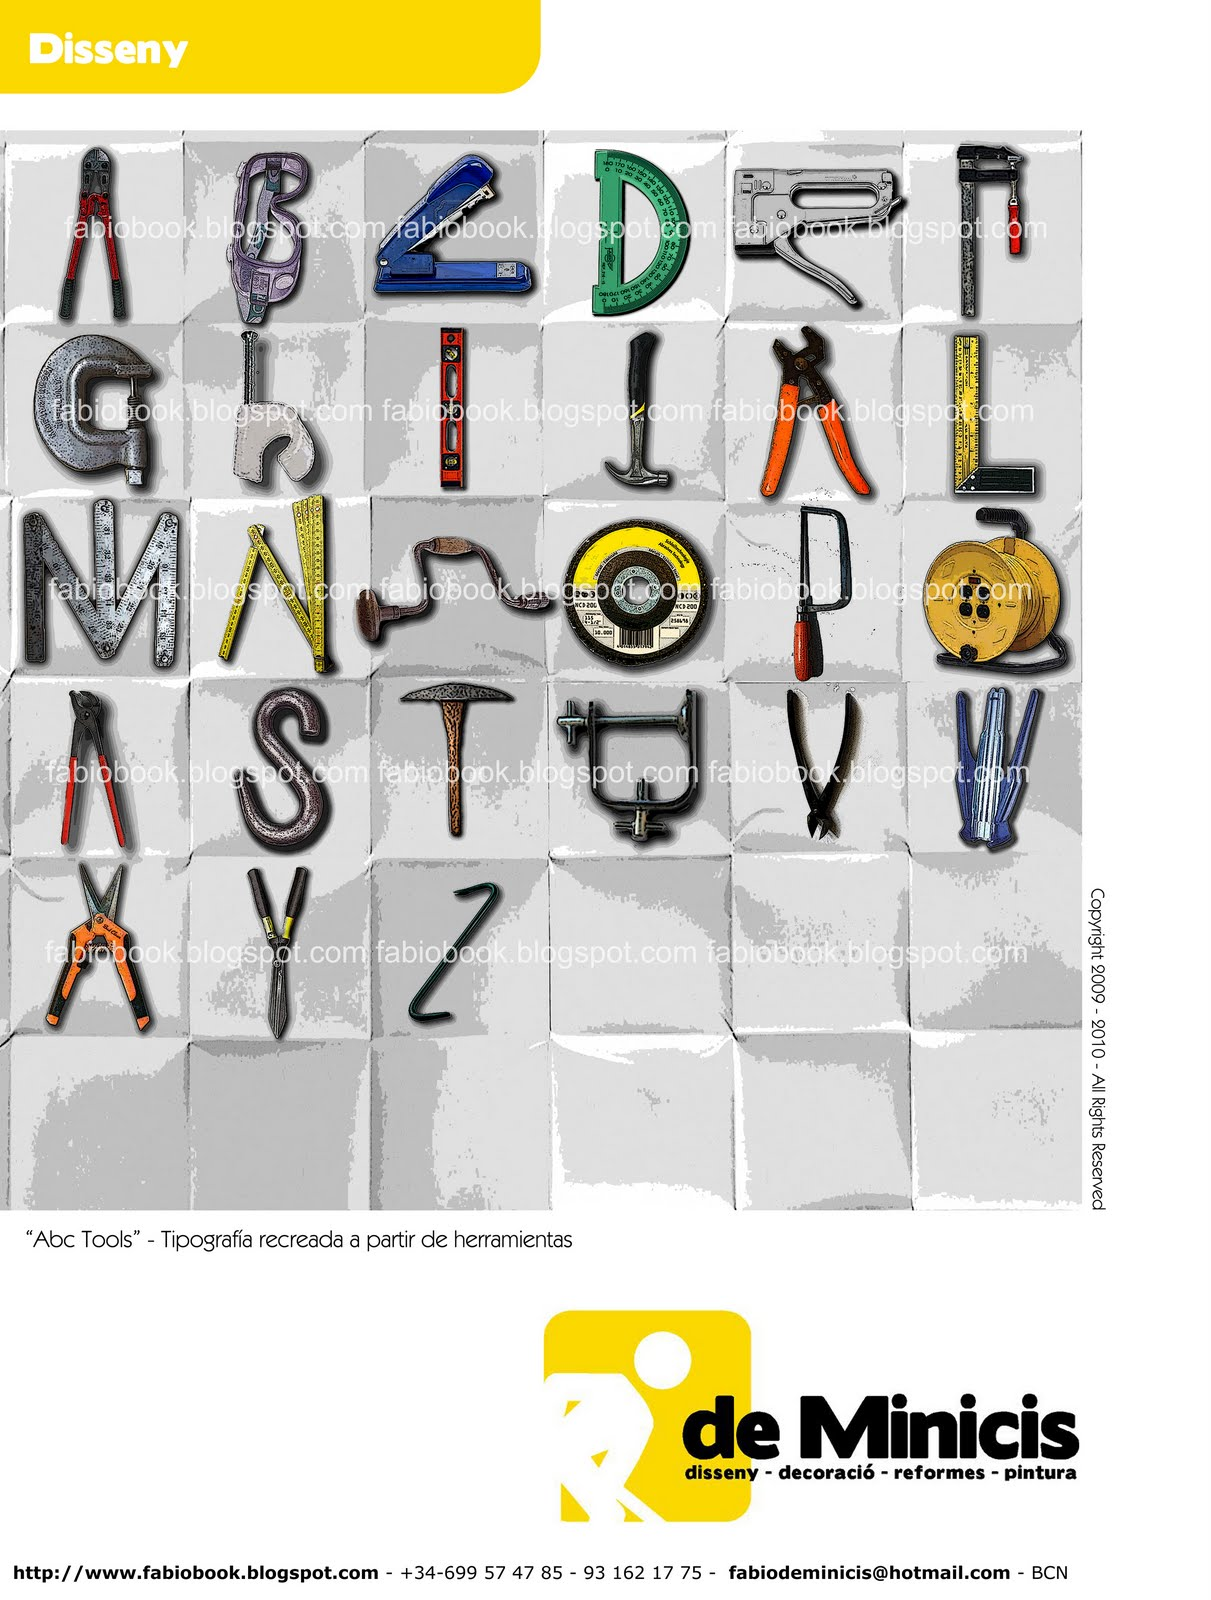 publi2 The ABCs in Tools